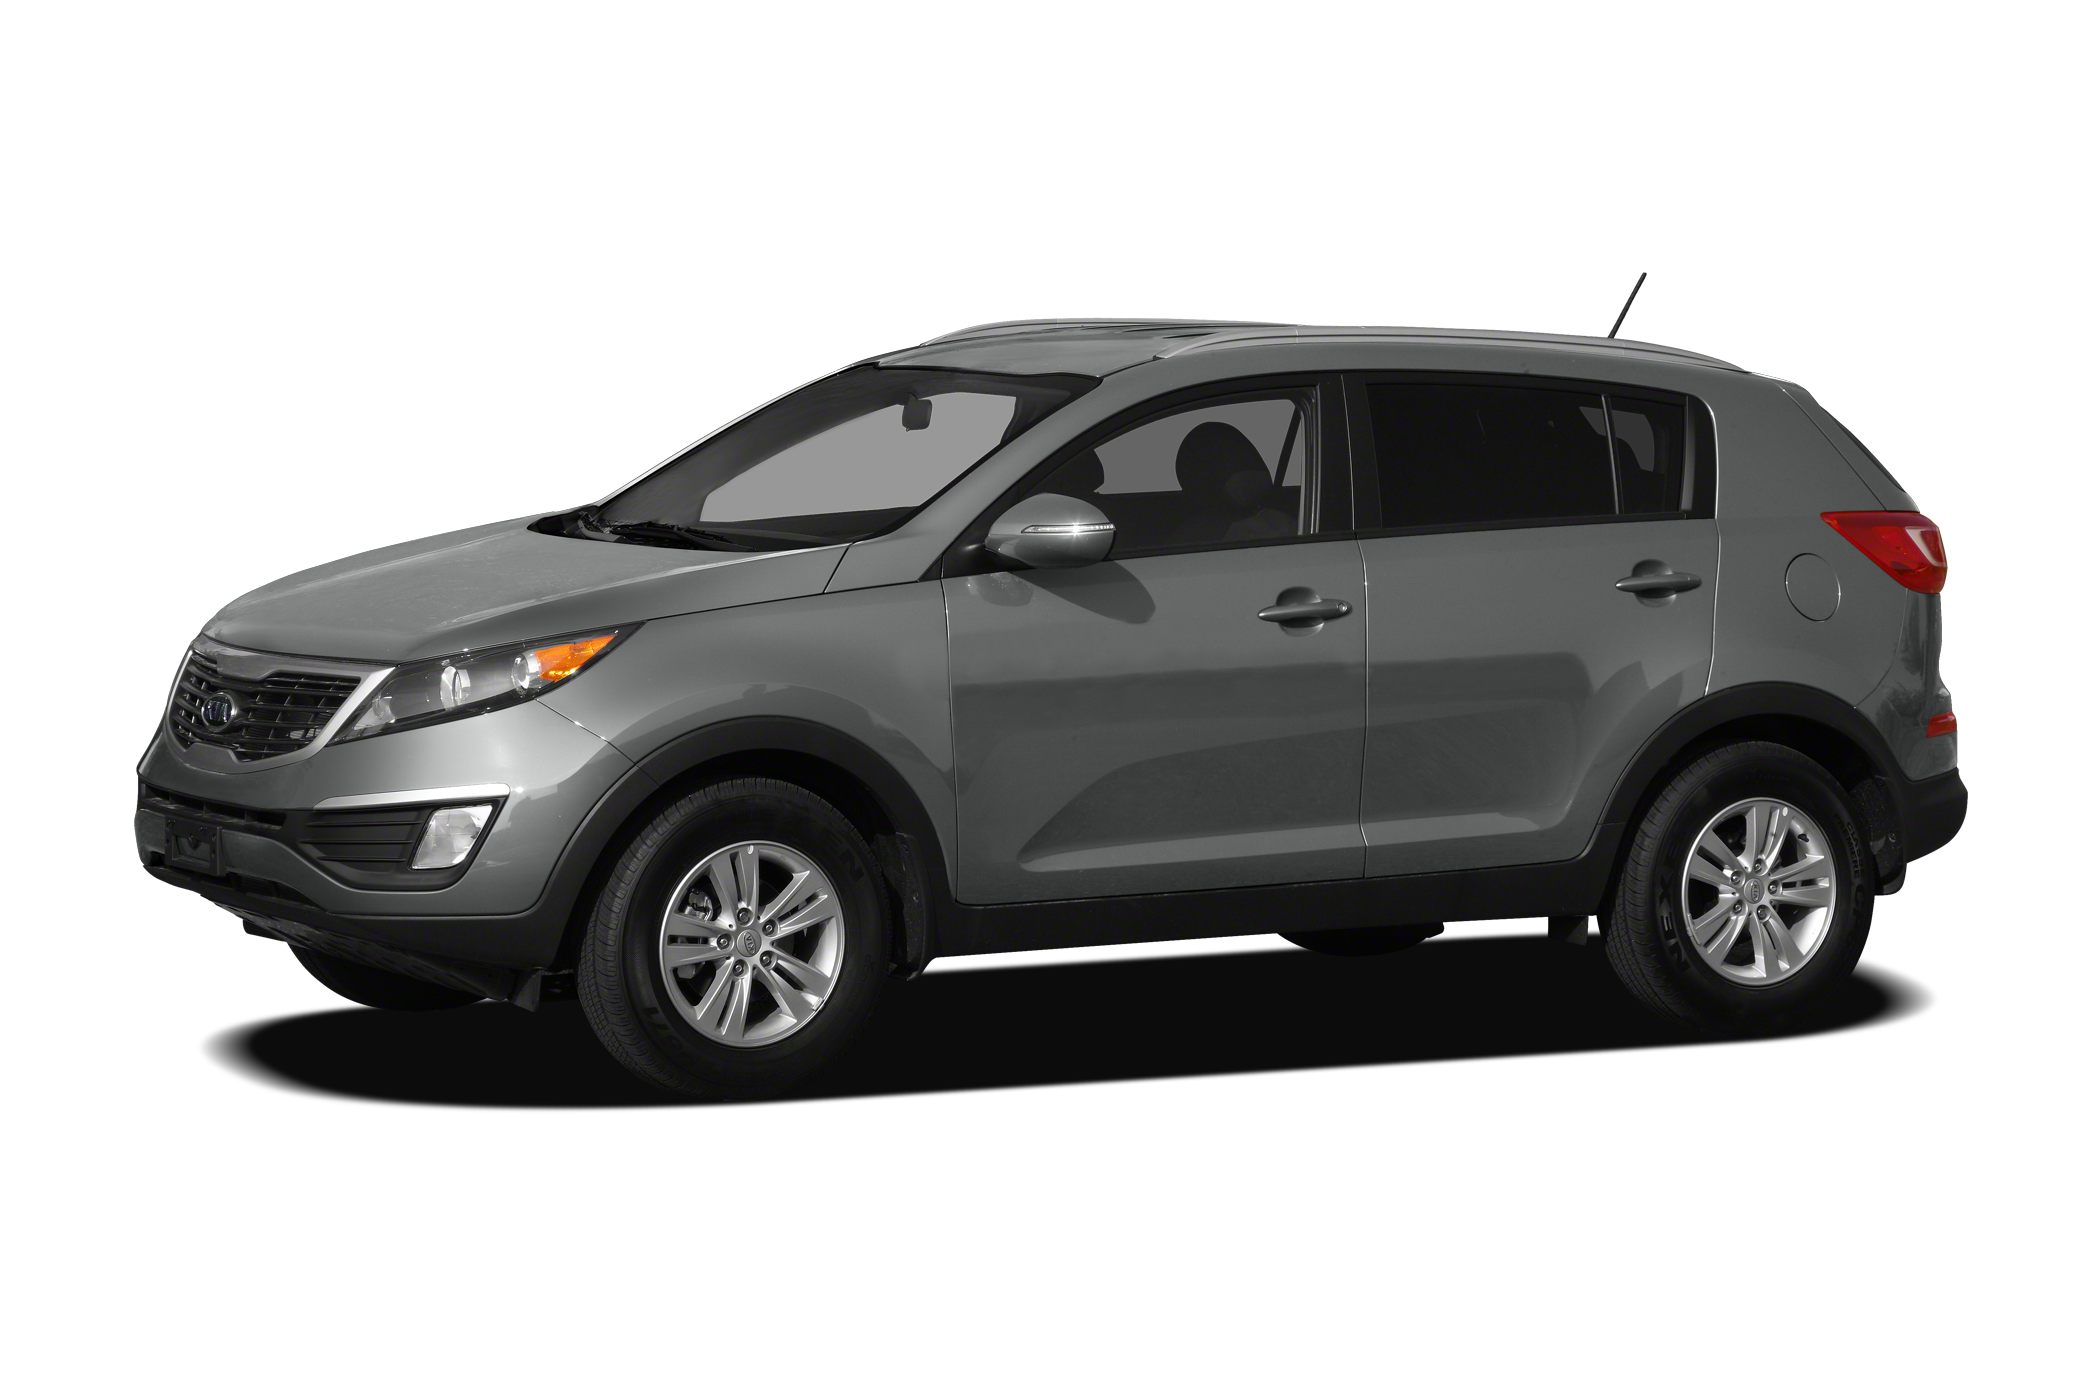 2012 Kia Sportage LX SUV for sale in Nashville for $15,988 with 44,480 miles.